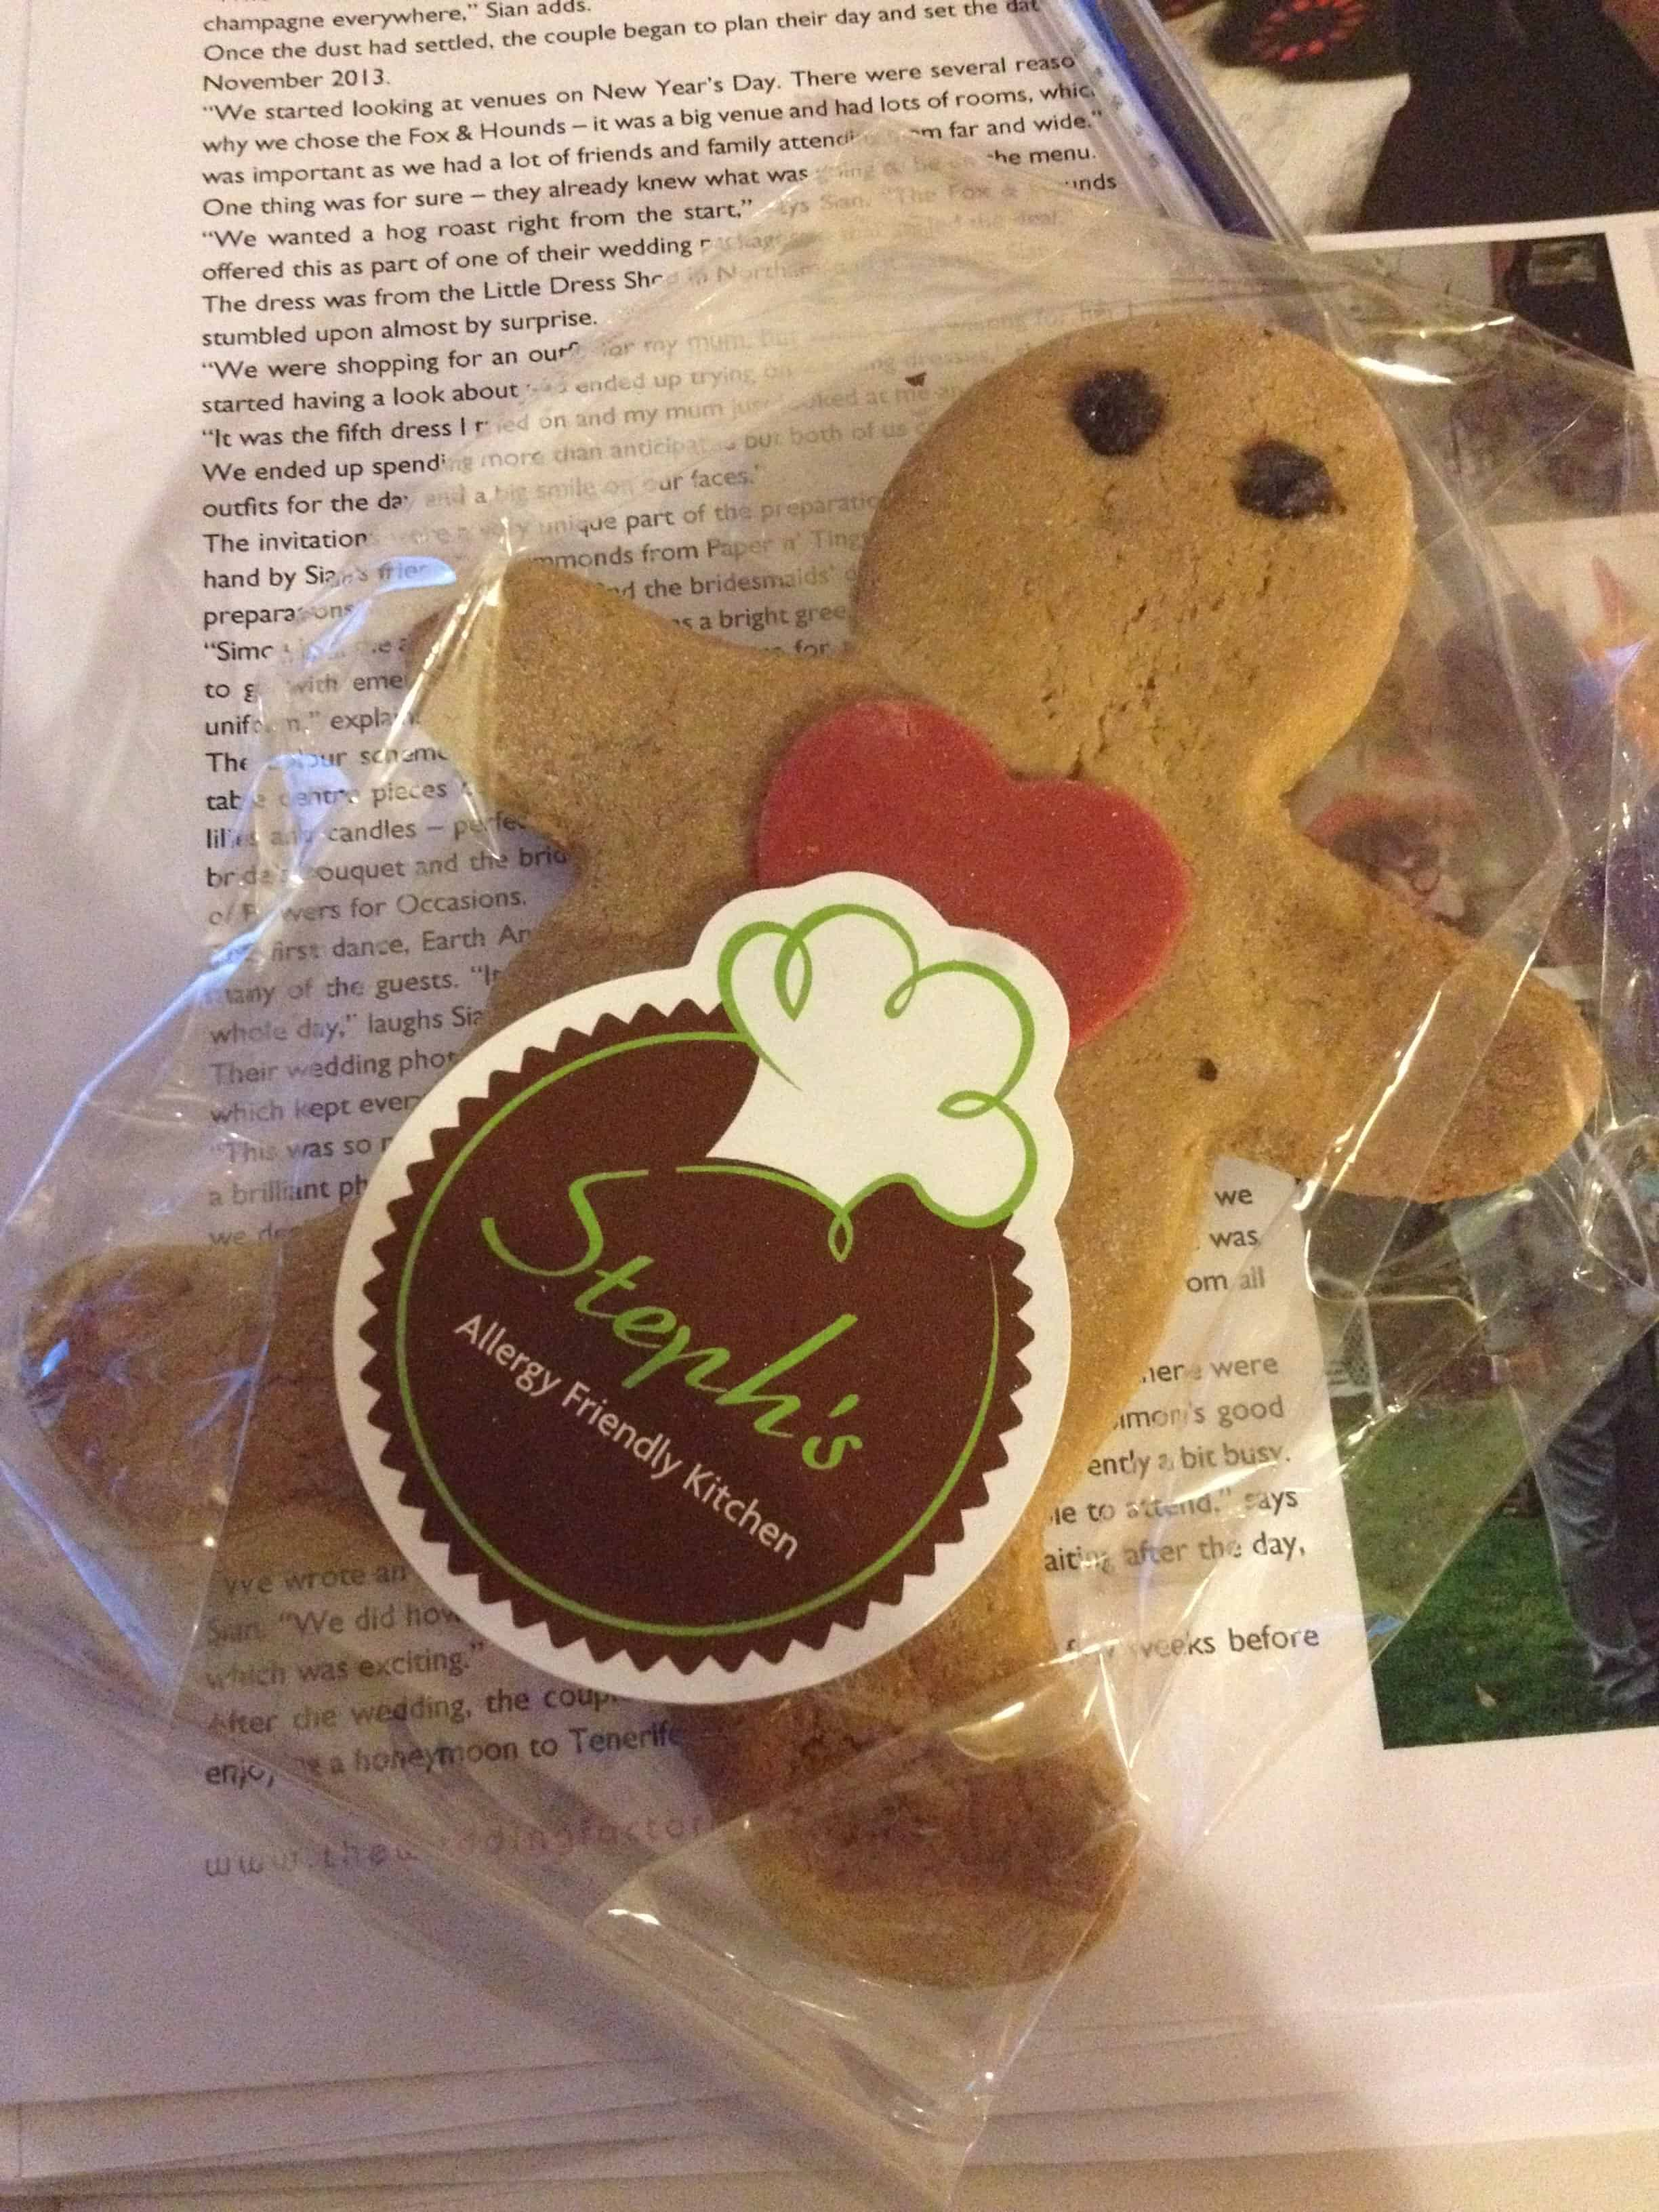 My gingerbread man accompanied me to work.... he never returned...